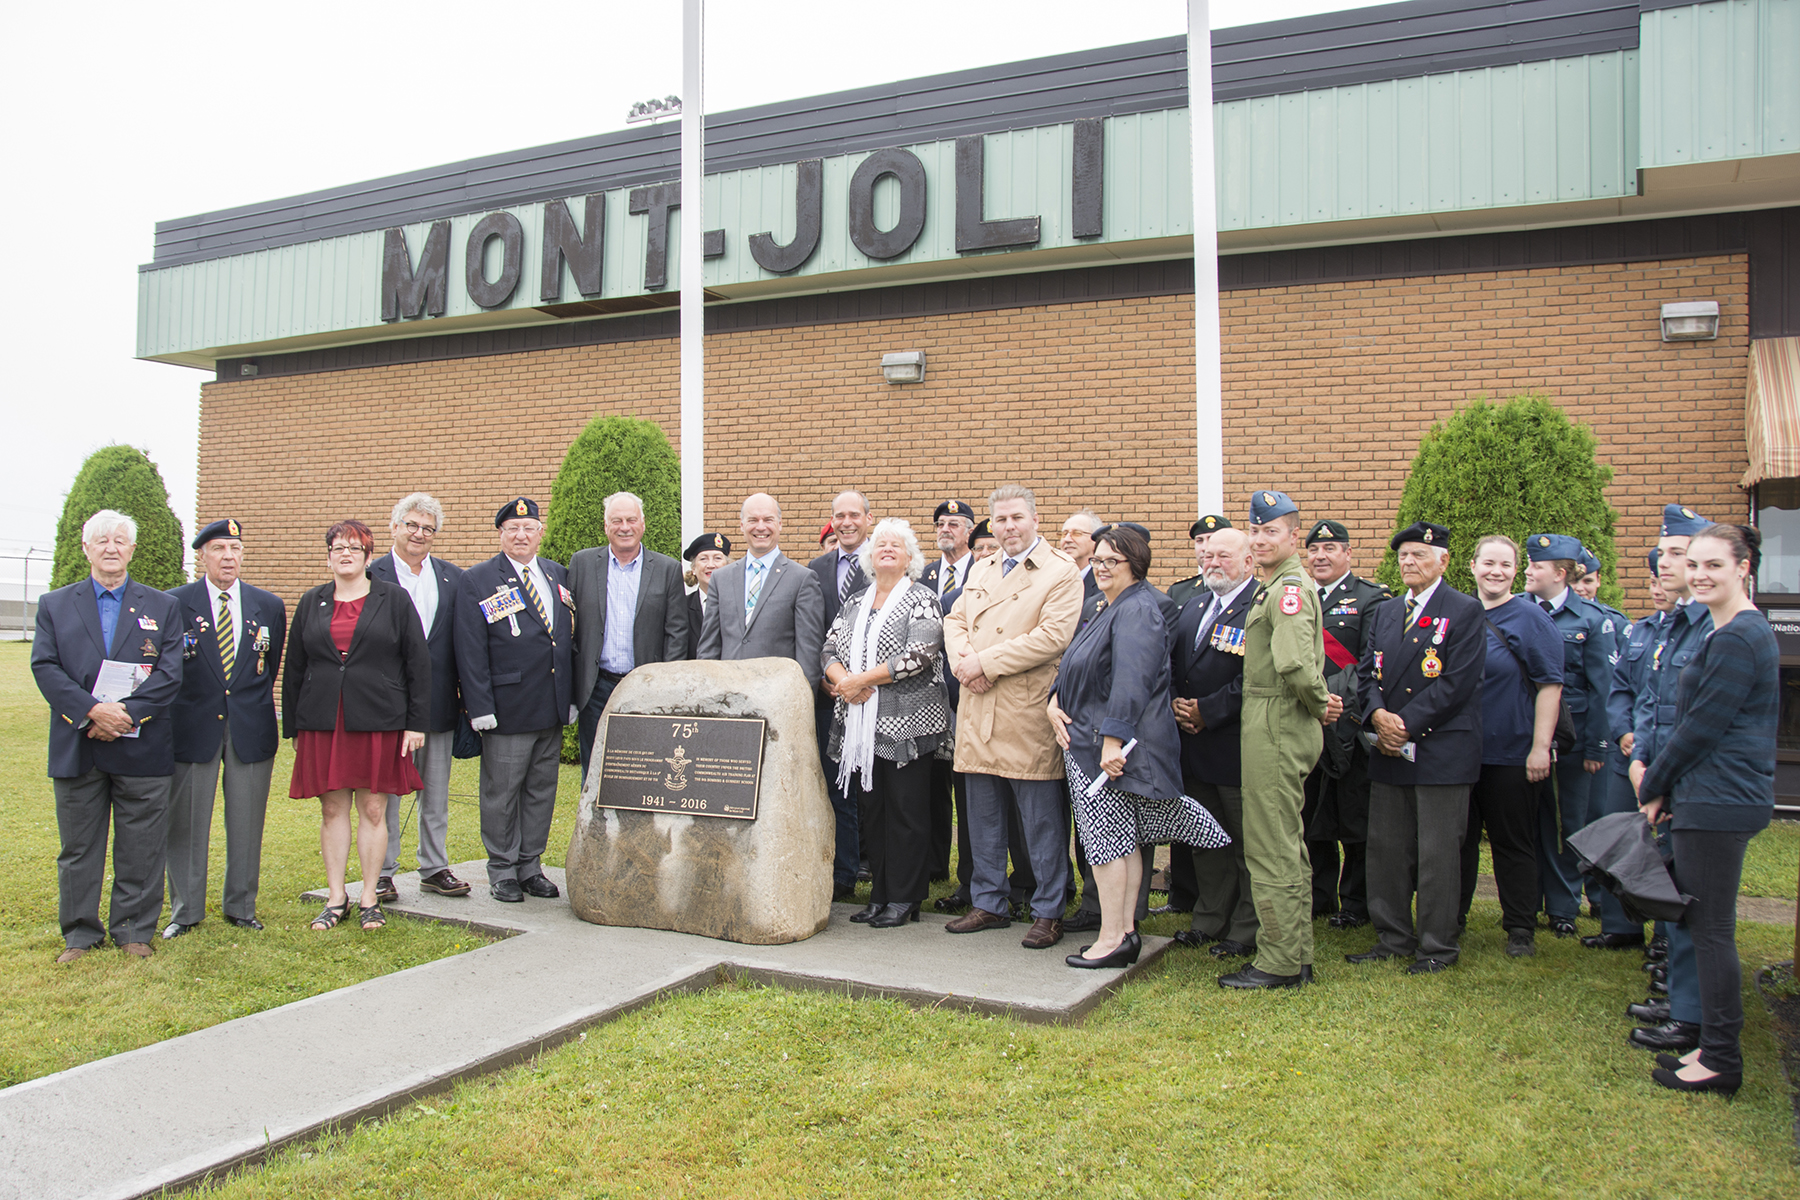 A bronze plaque commemorating No. 9 Bombing and Gunnery School was unveiled just outside the entrance to Mont-Joli, Québec, Regional Airport, during a dedication ceremony held on August 22, 2016. PHOTO: Jean-Pierre Bonin